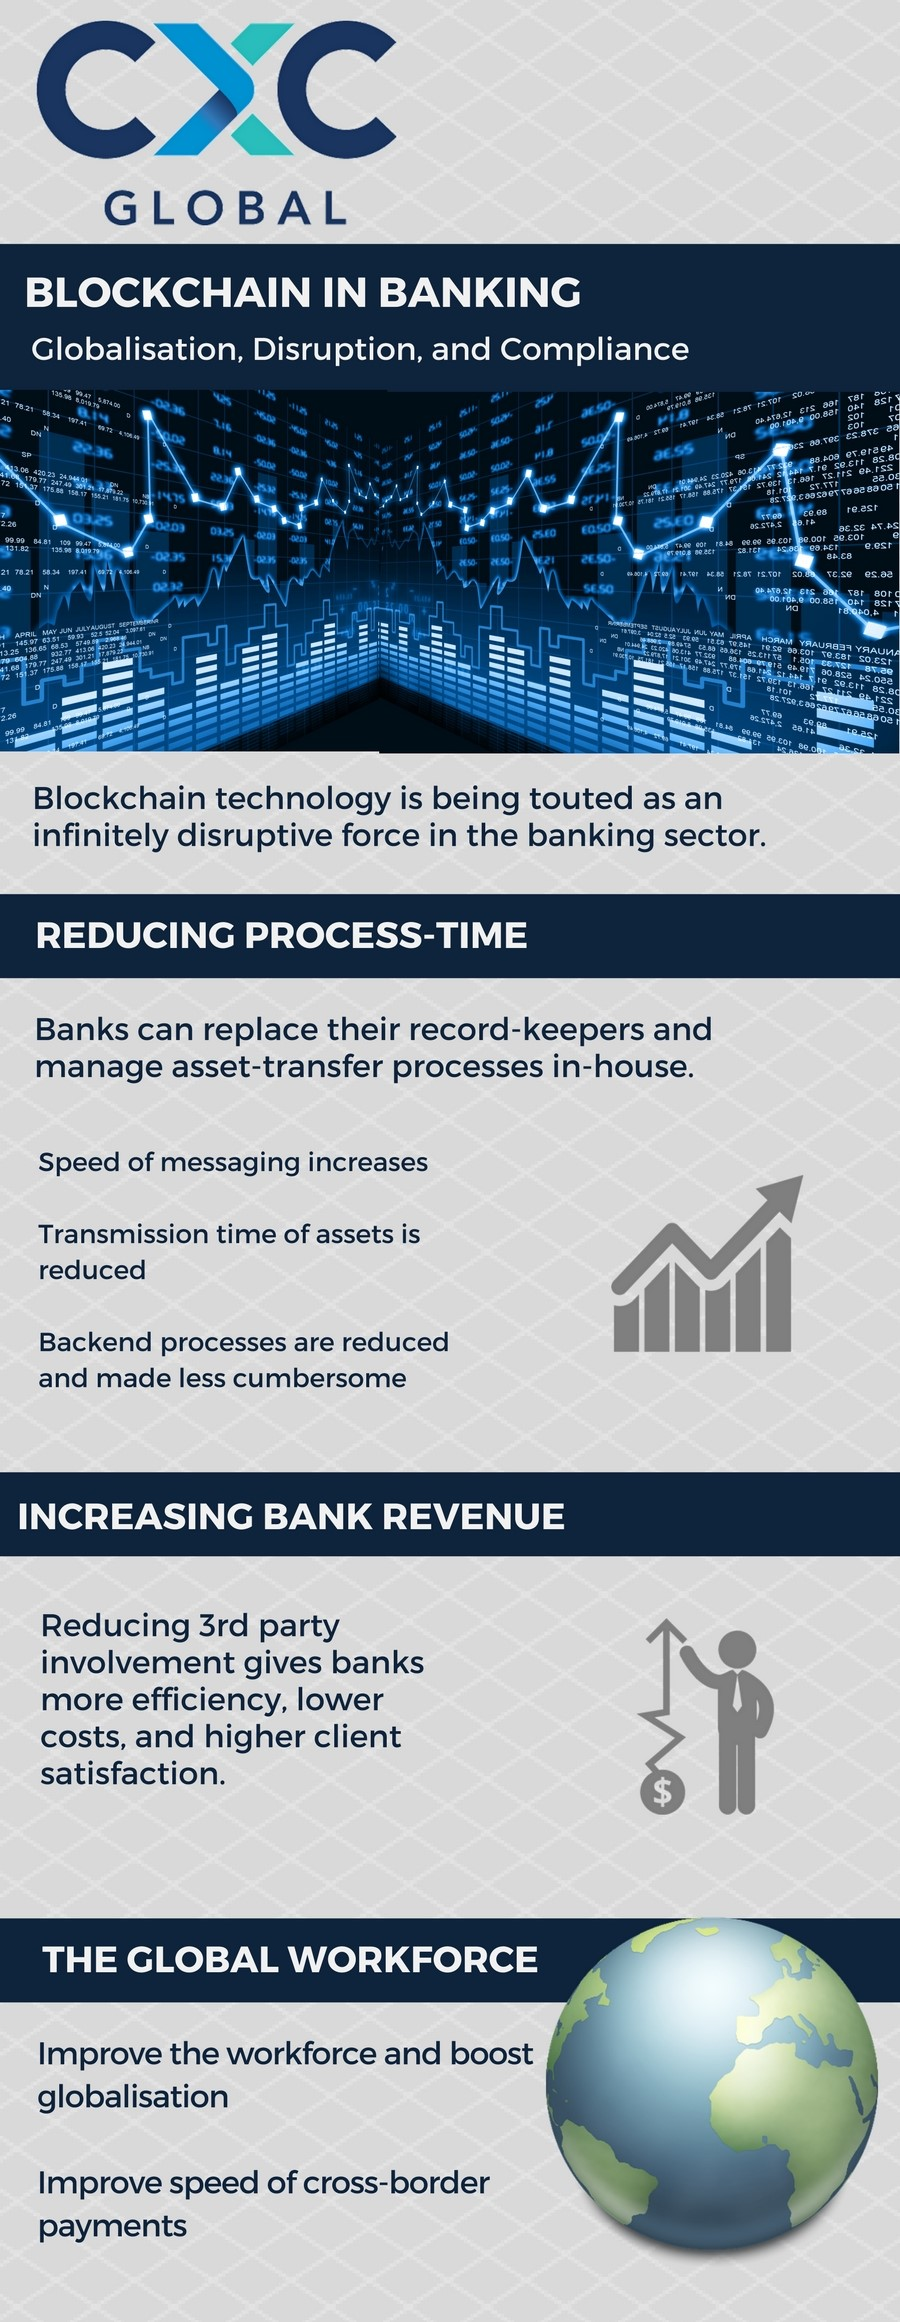 Banks can replace their record-keepers and manage these processes in-house 1. Speed of messaging increases 2. Transmission time of assets is reduced 3. Backend processes are reduced and made less cumbersome Global Transactions will thrive, and new talent will be developed. 1. Improve the workforce and boost globalisation 2. Increase banking revenues (less to be outsourced) 3. Improve speed of cross-border payments